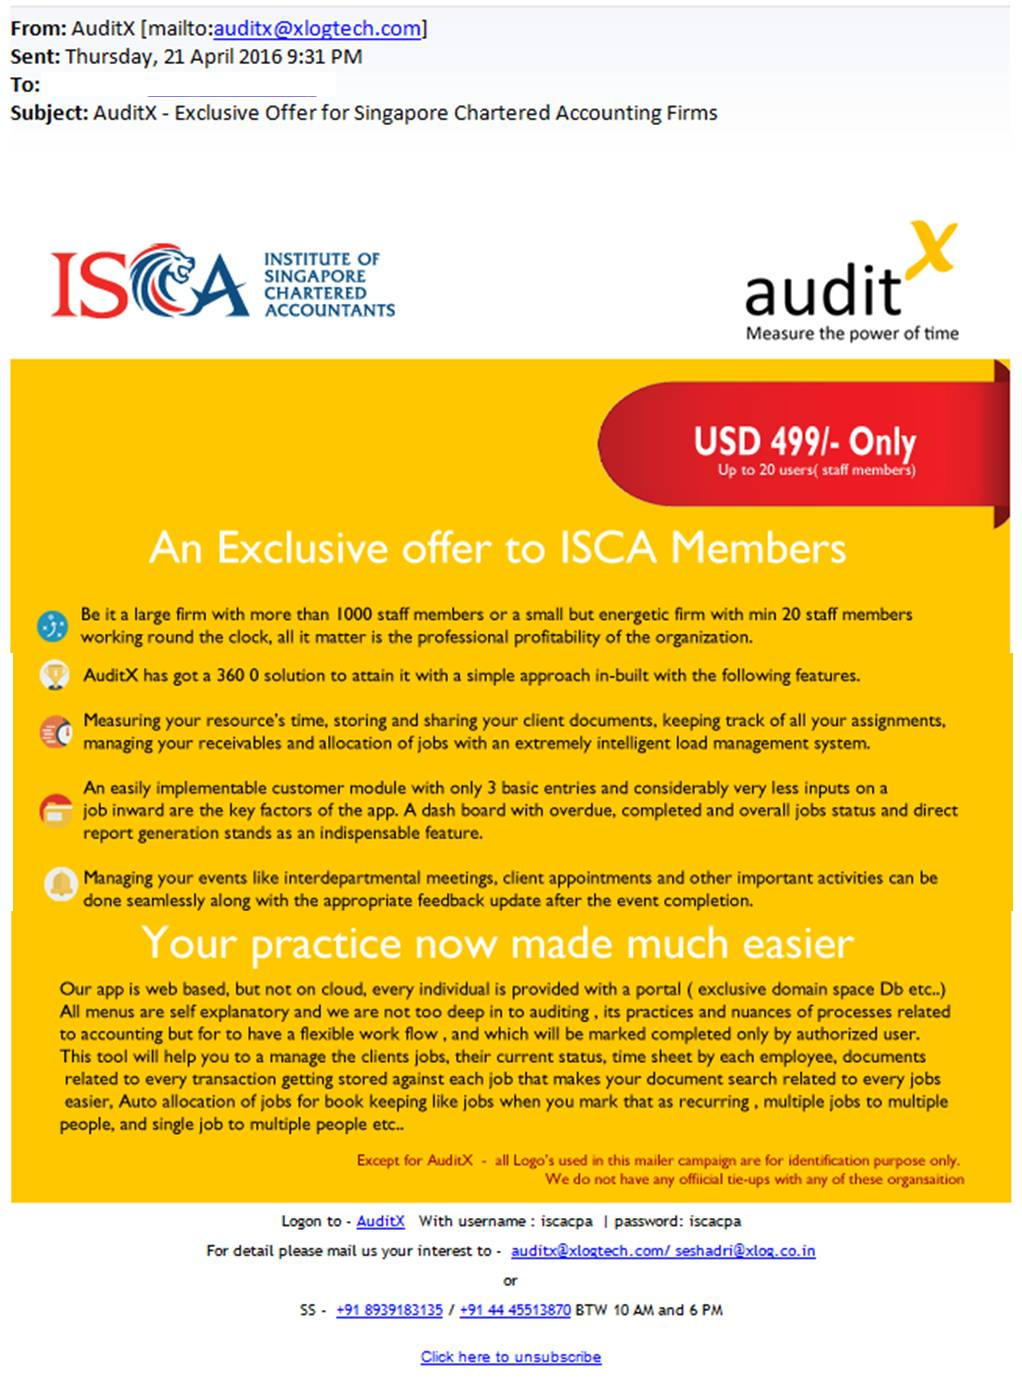 Unauthorised Use of ISCA Logo